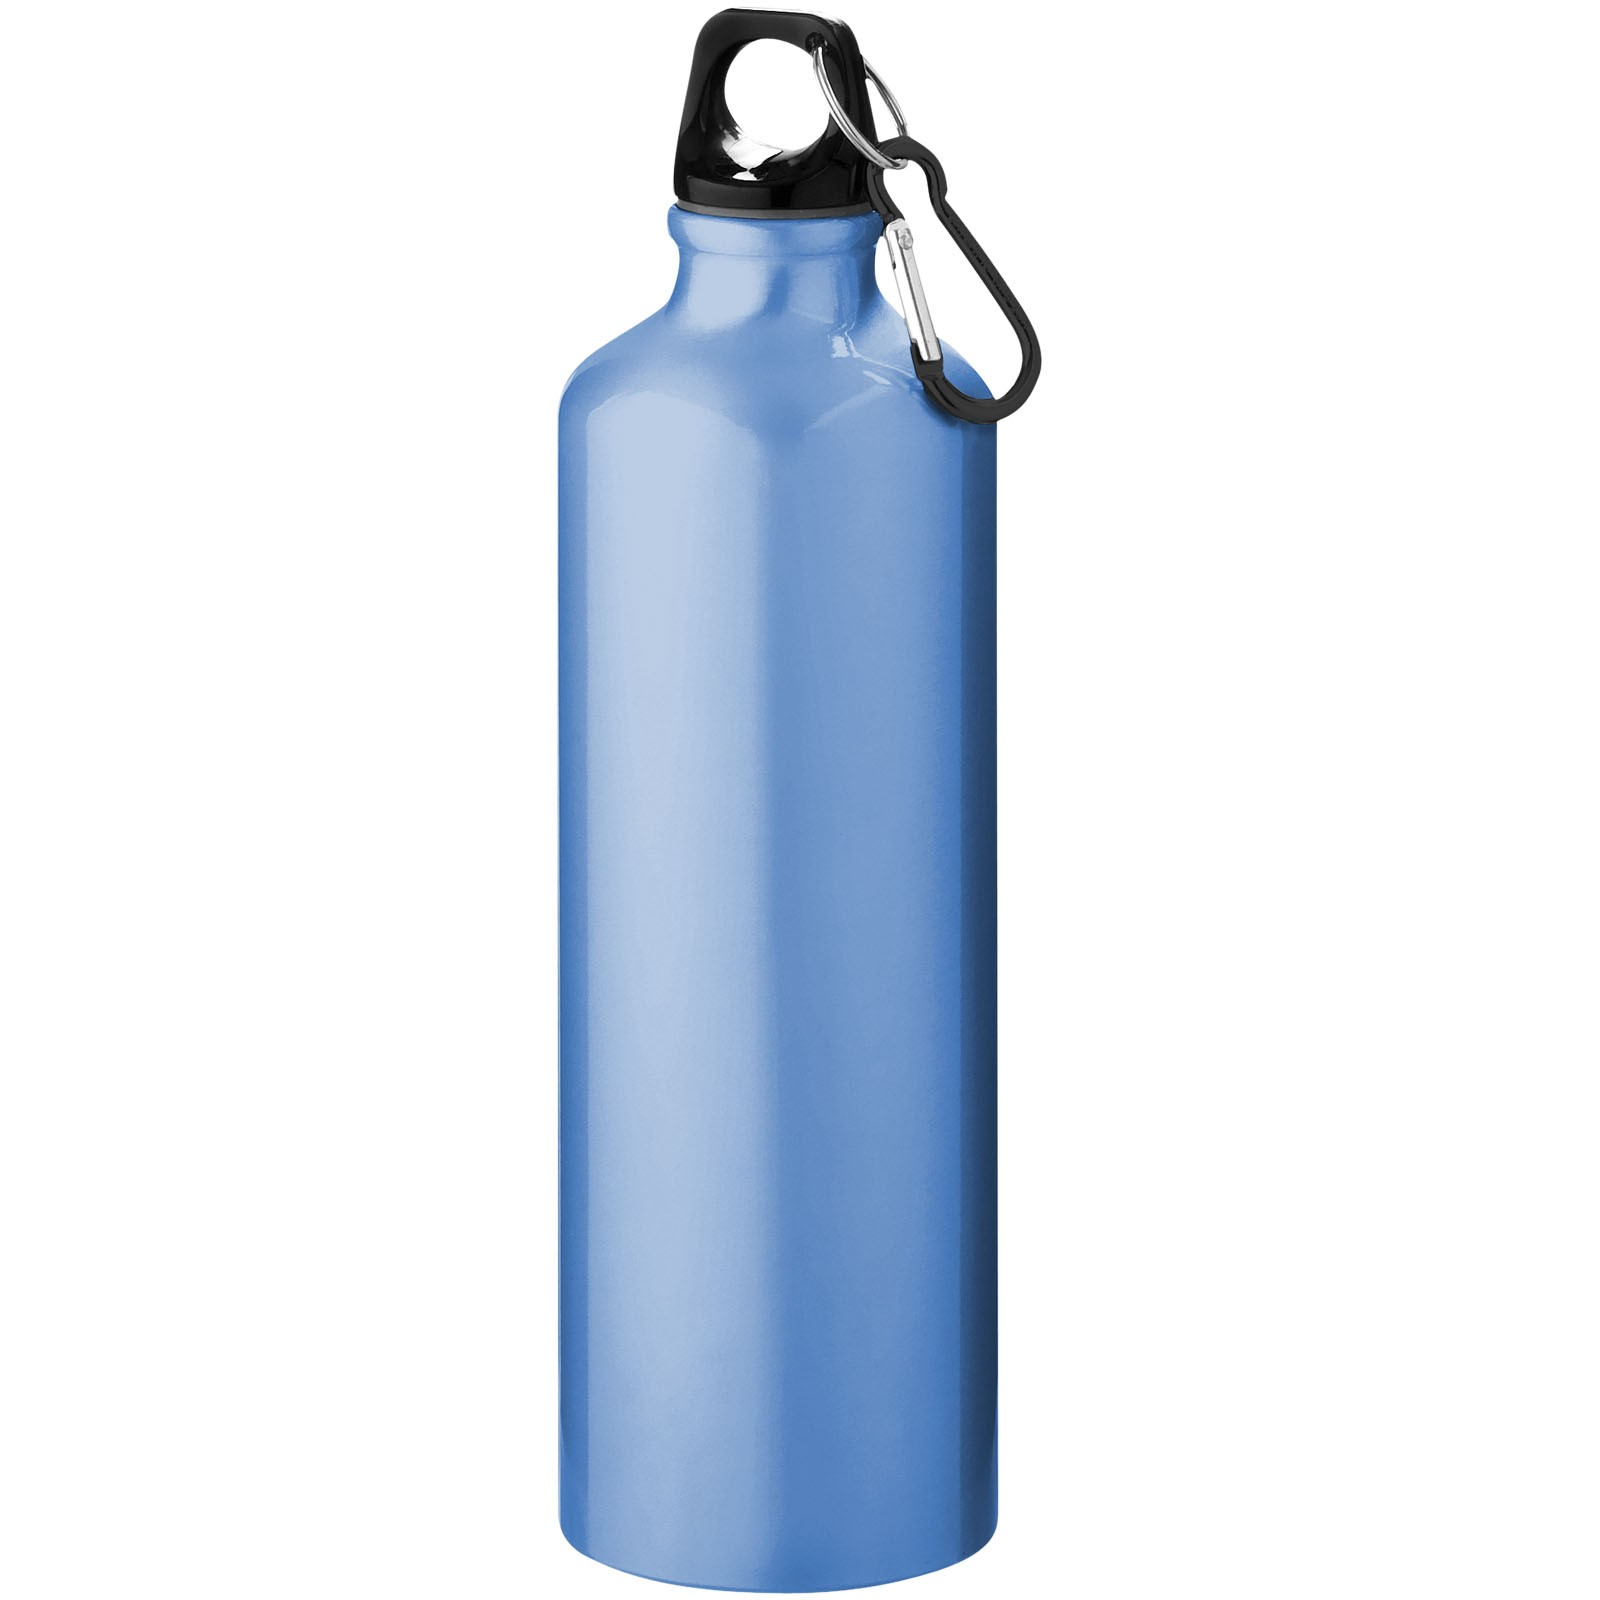 Pacific 770 ml sport bottle with carabiner - Light blue